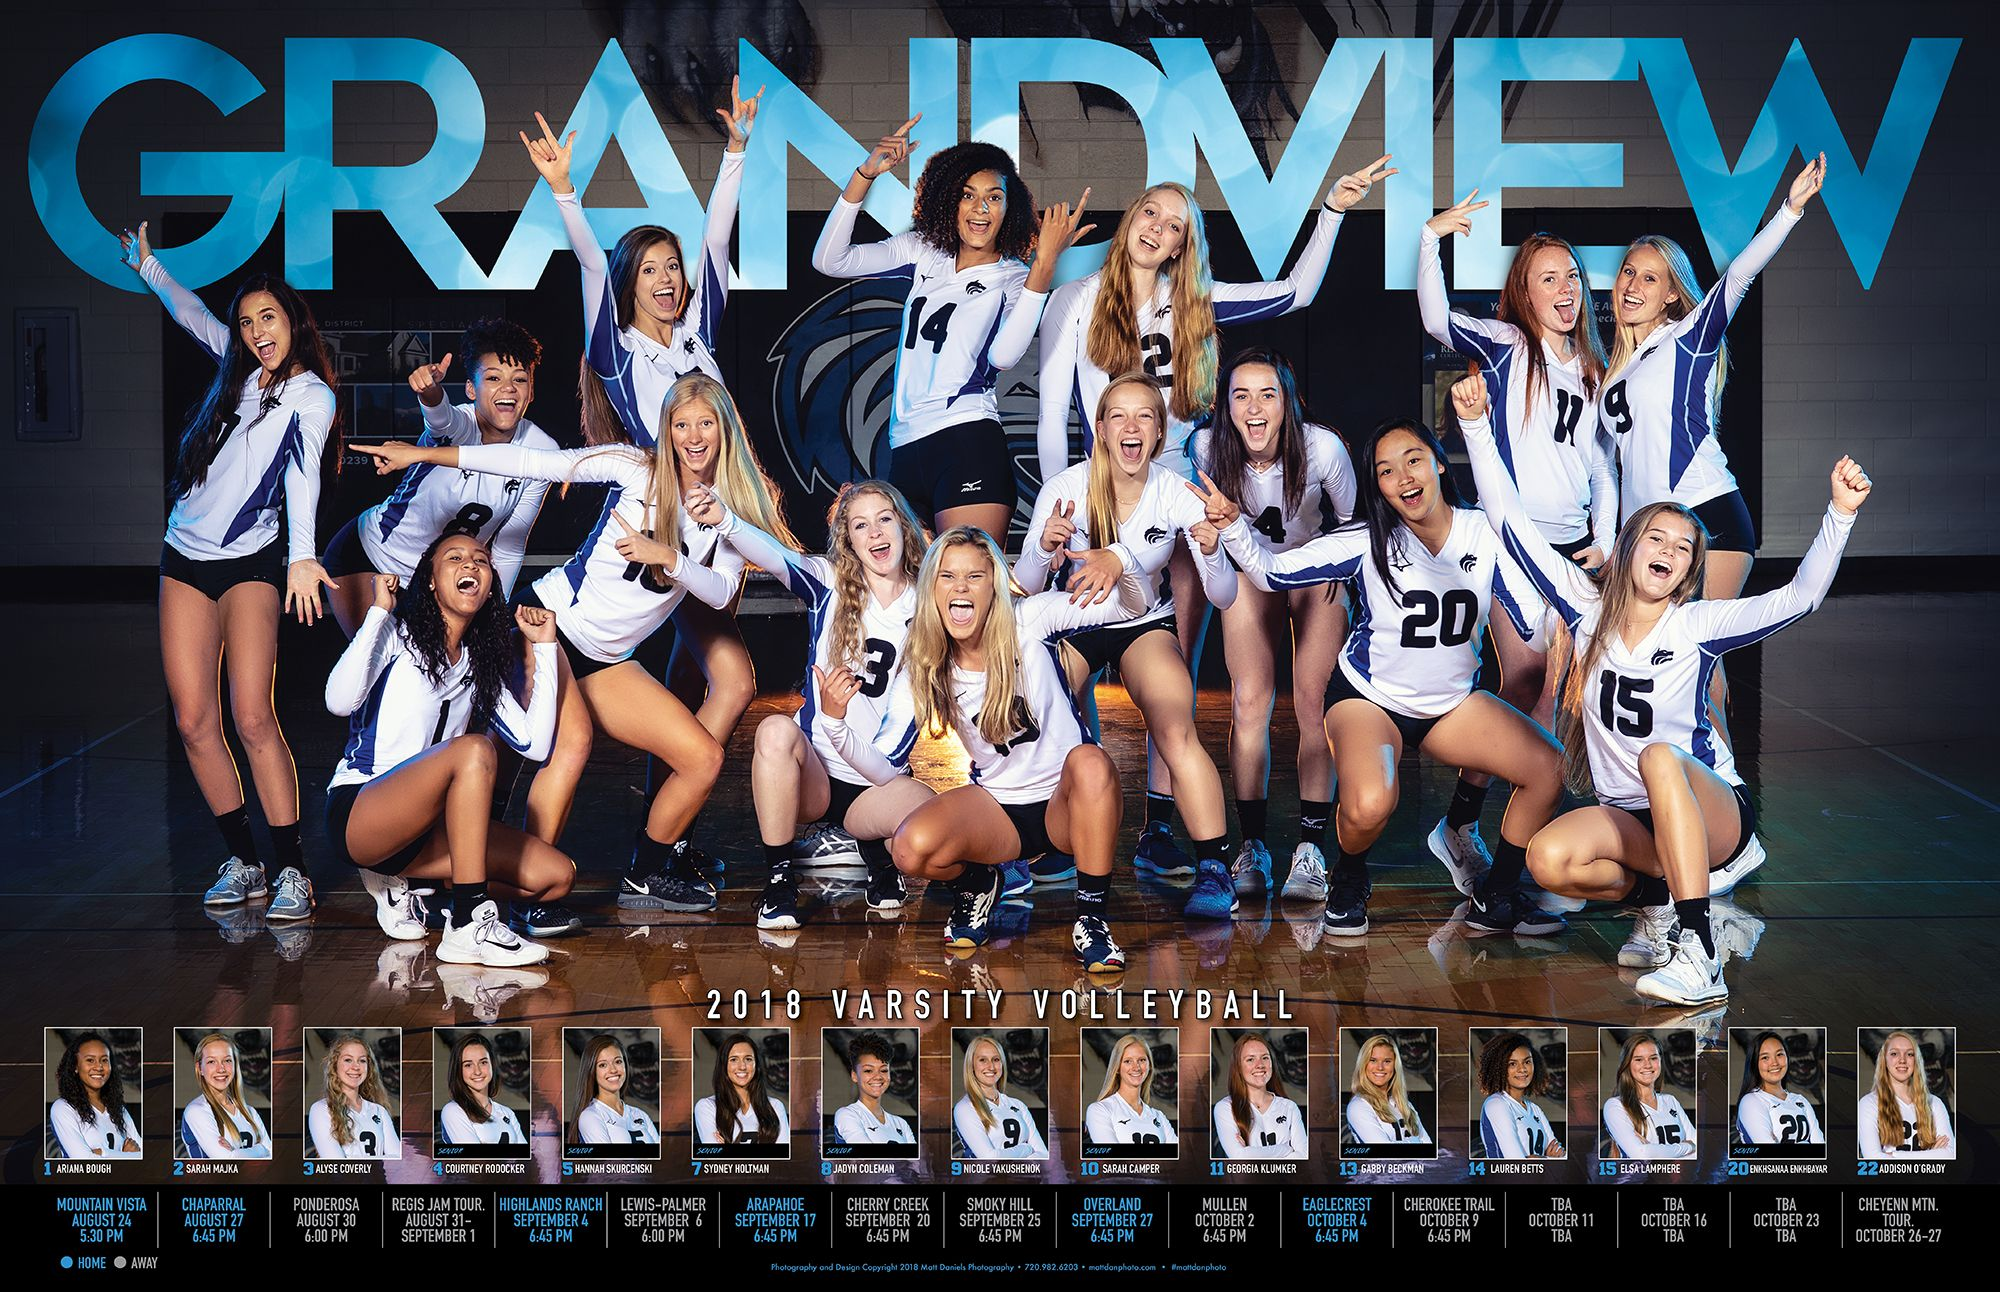 Team Poster For The 2018 Grandview Volleyball Team Copyright 2018 Matt Daniels Photography Sport Poster Basketball Team Pictures Volleyball Photos